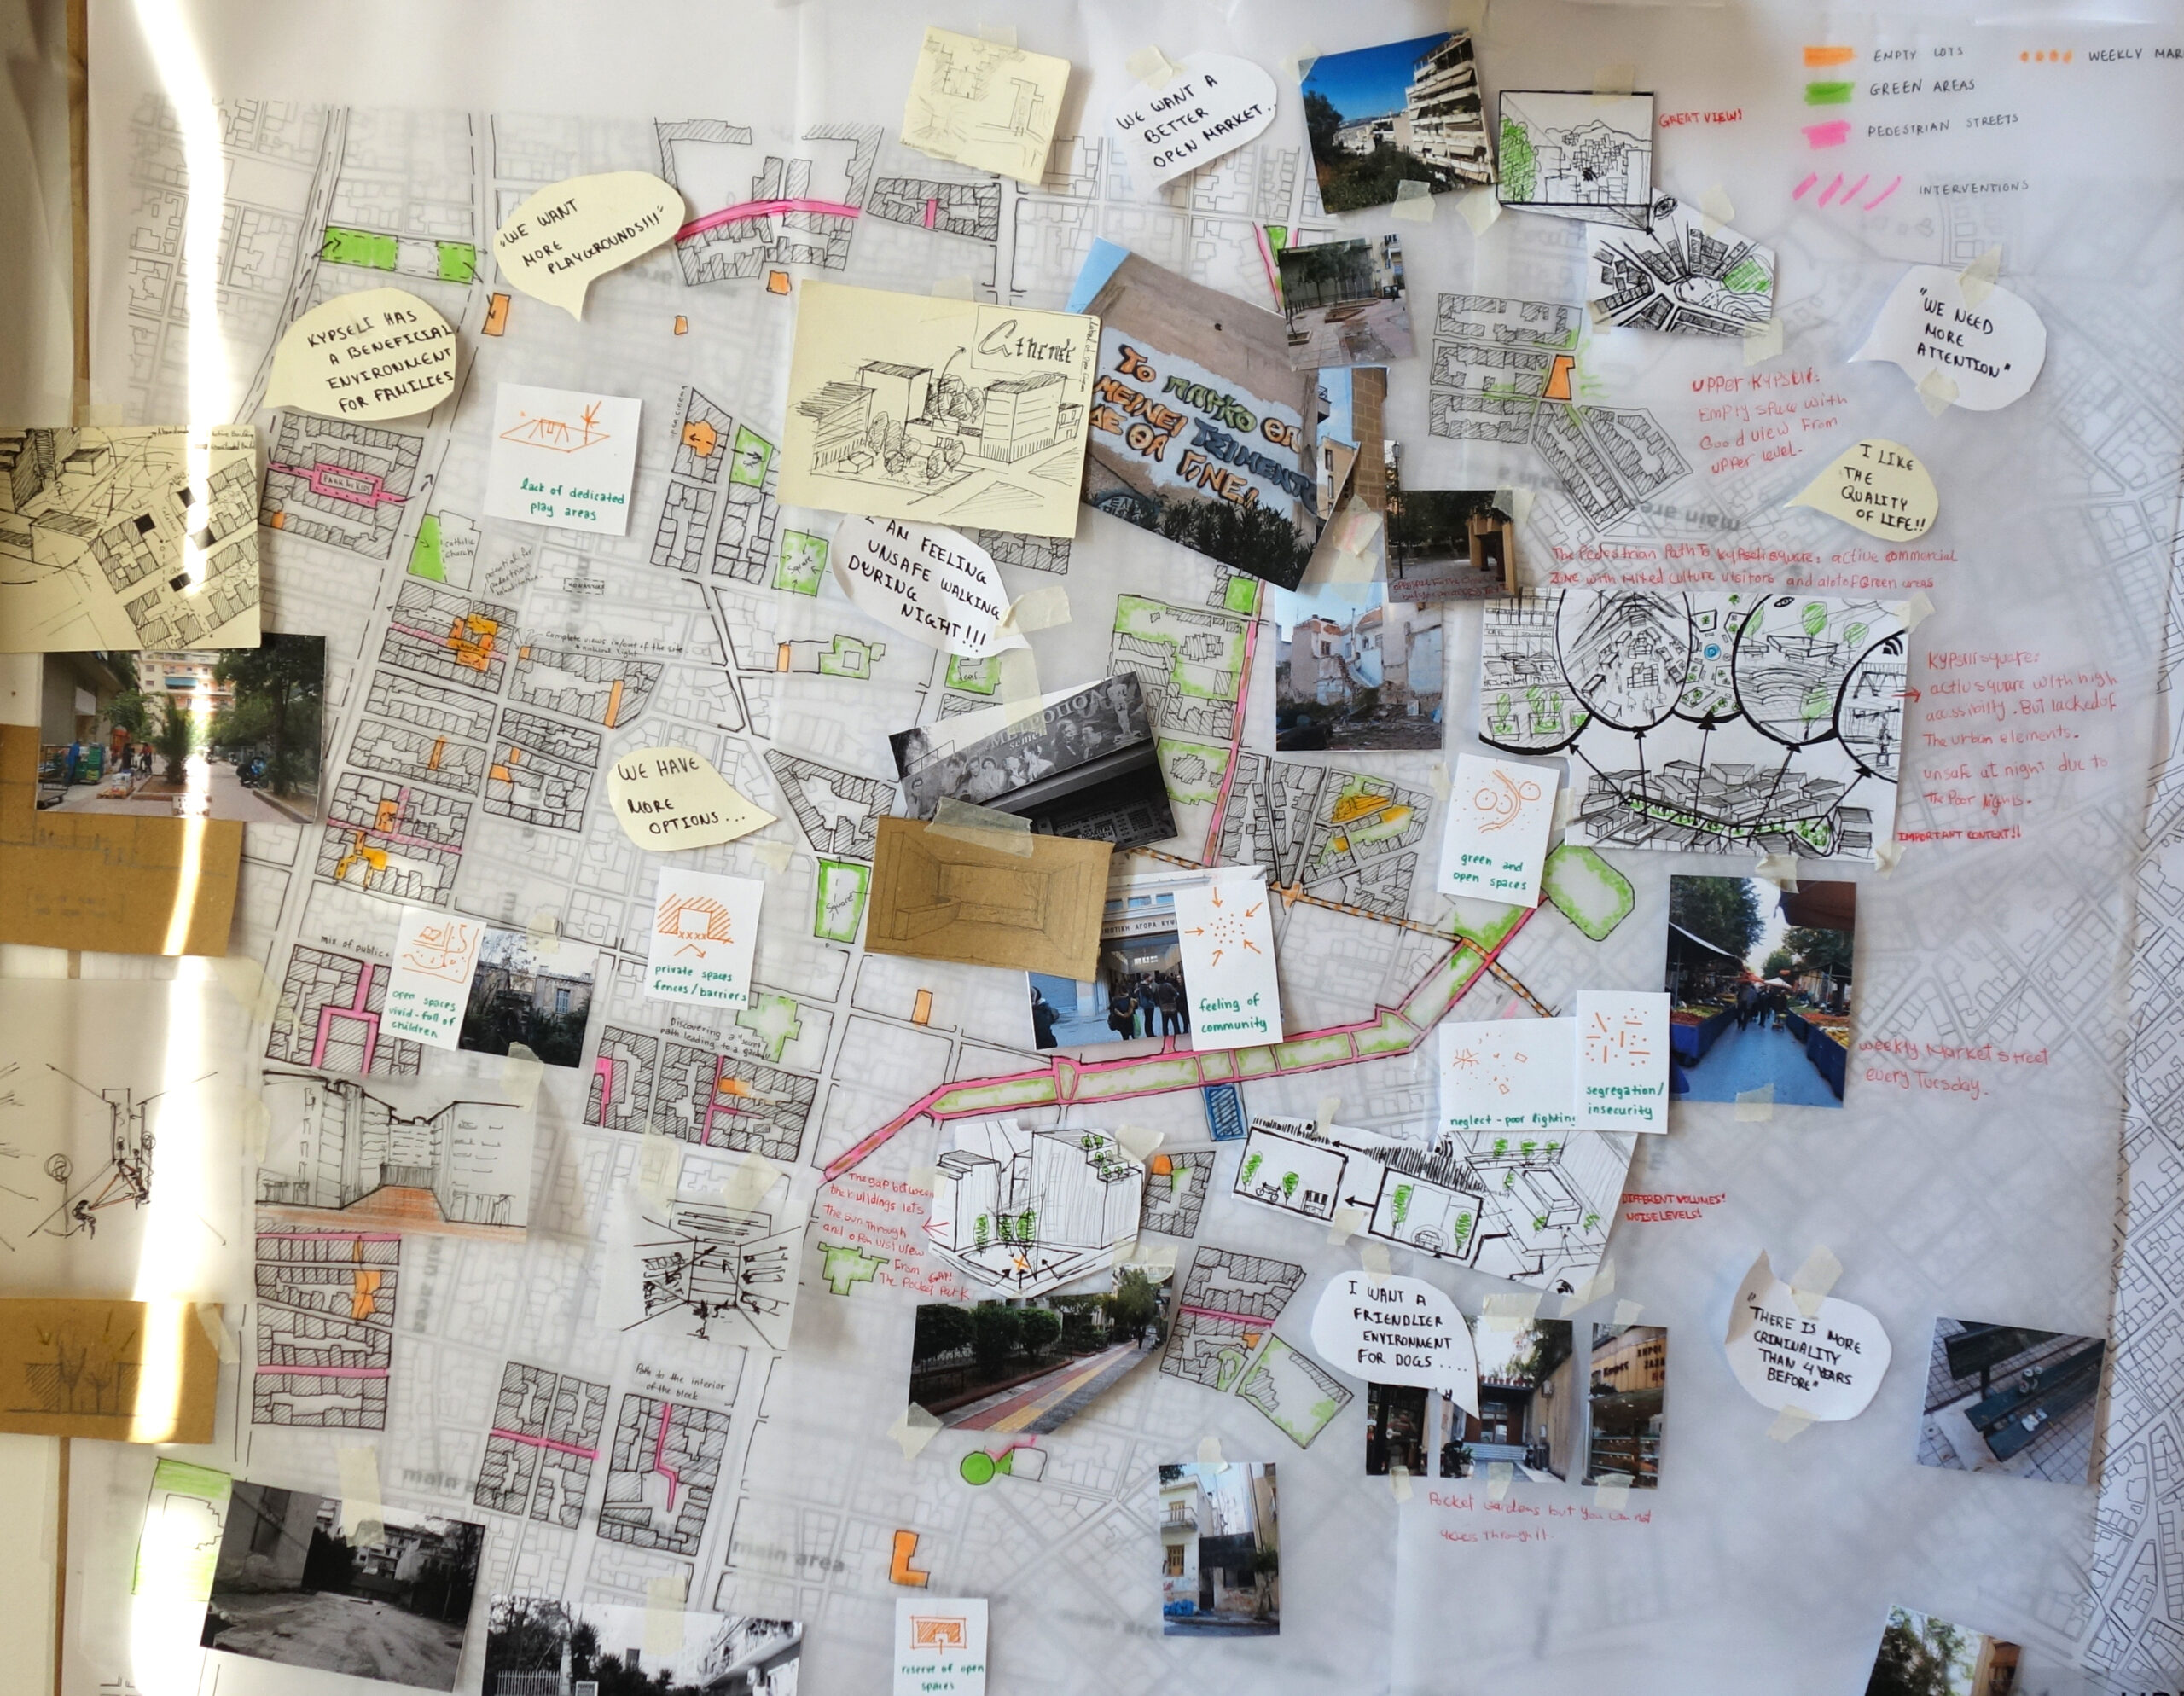 Transforming the (re)public: An Urban Laboratory on Public Space